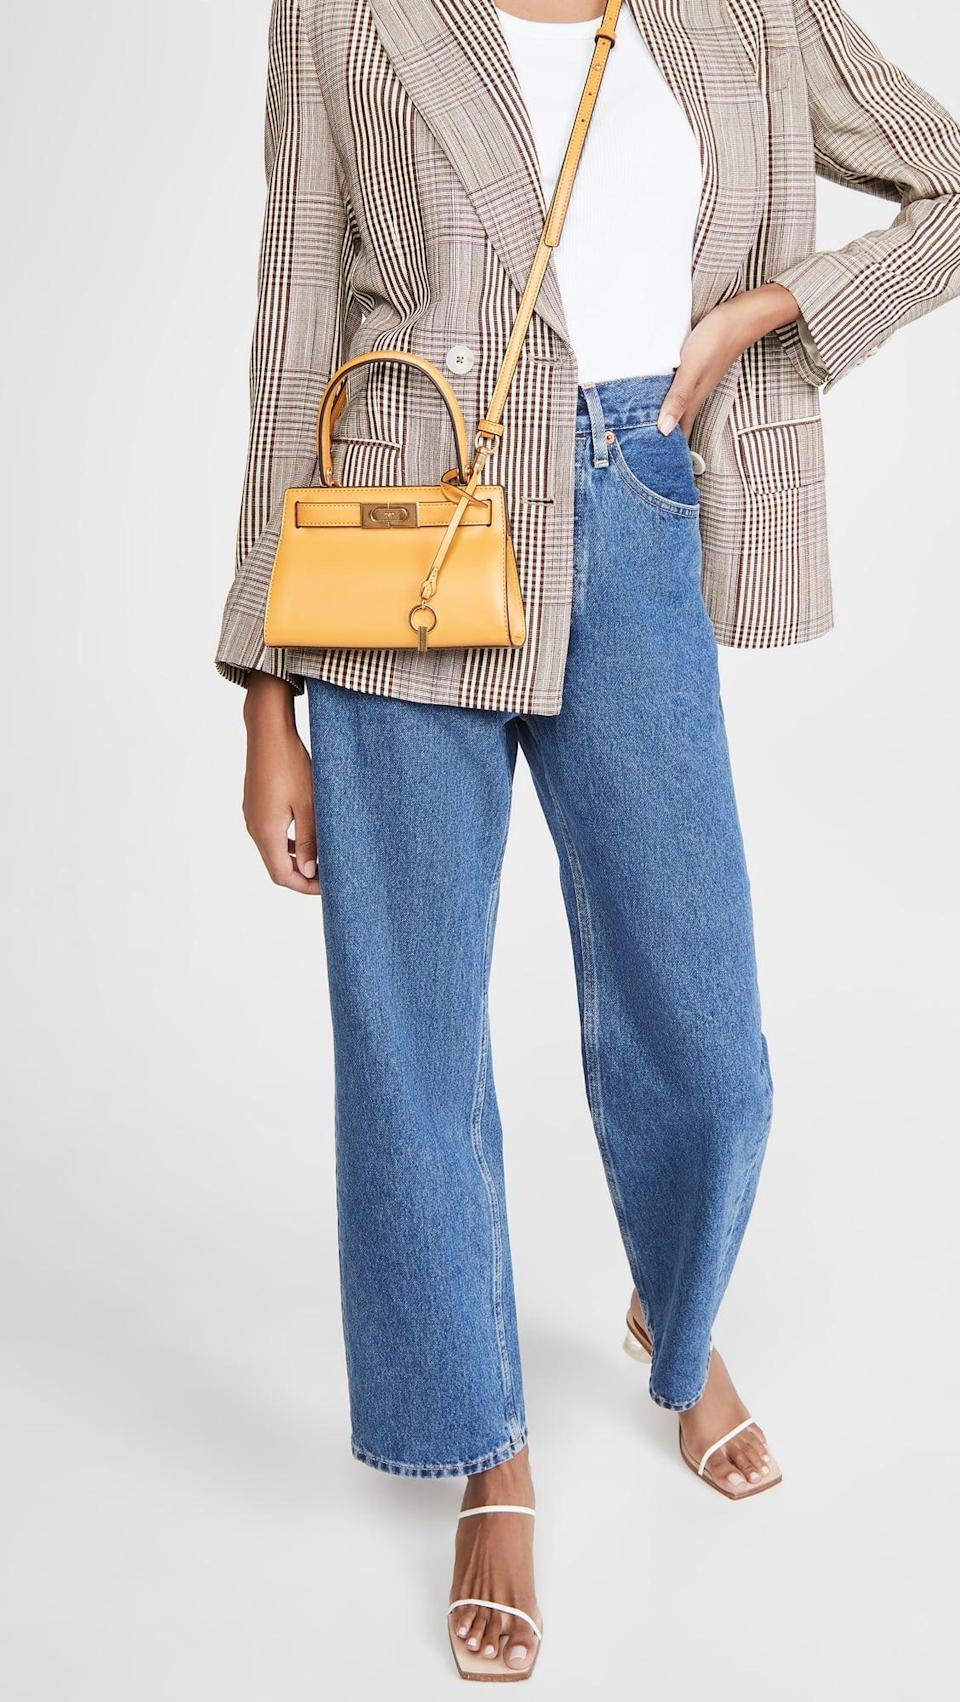 <p>Add a pop of color to your look with the <span>Tory Burch Lee Radziwill Petite Bag</span> ($498).</p>